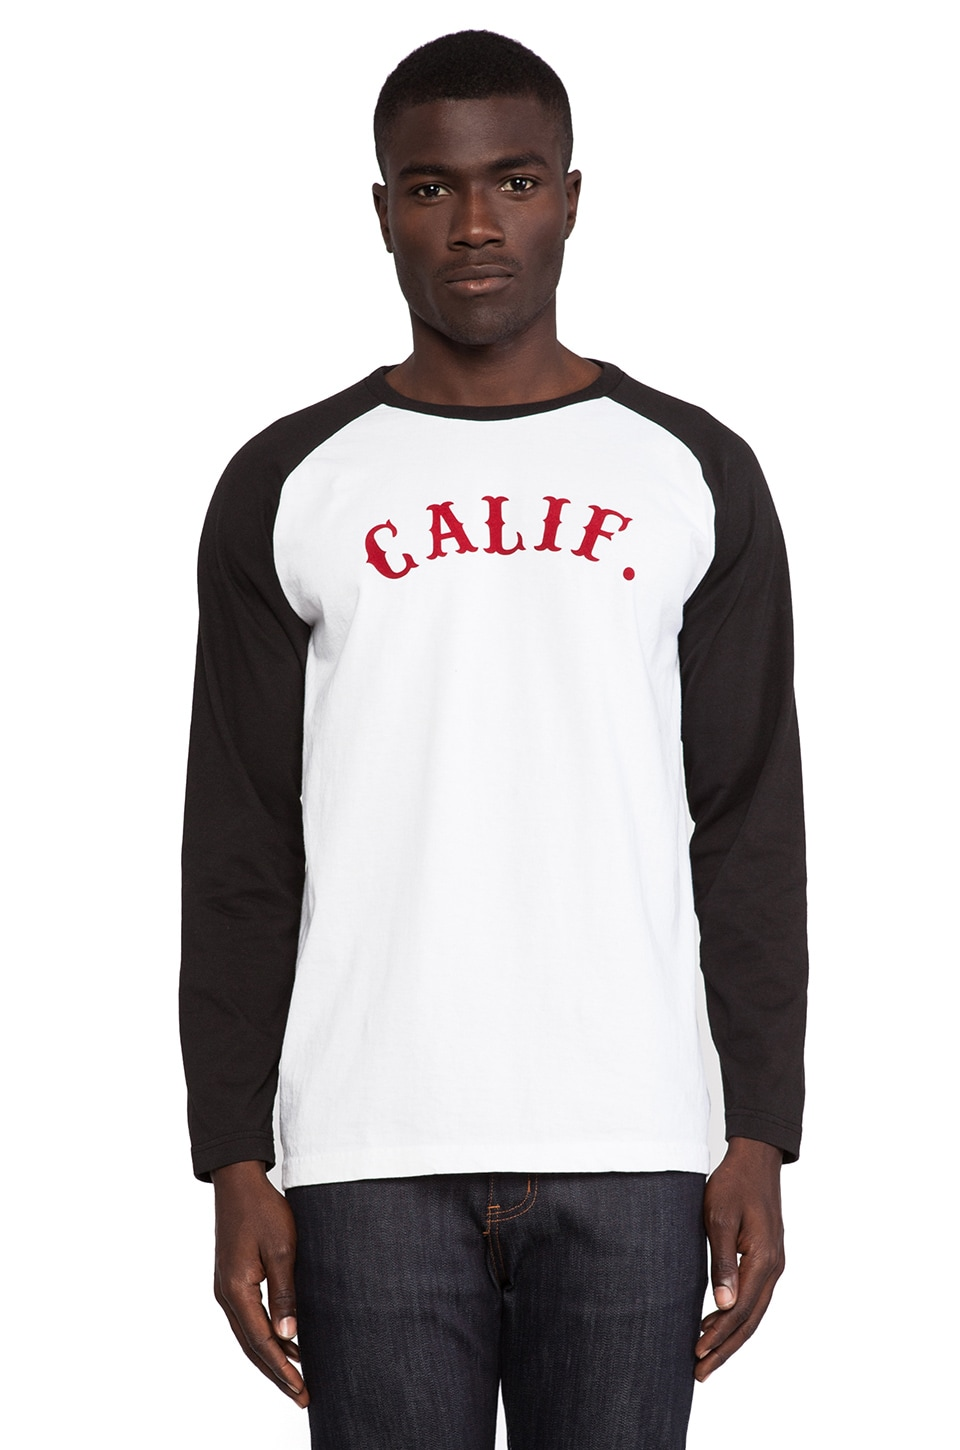 Fuct Calif. Raglan Tee in White/Black